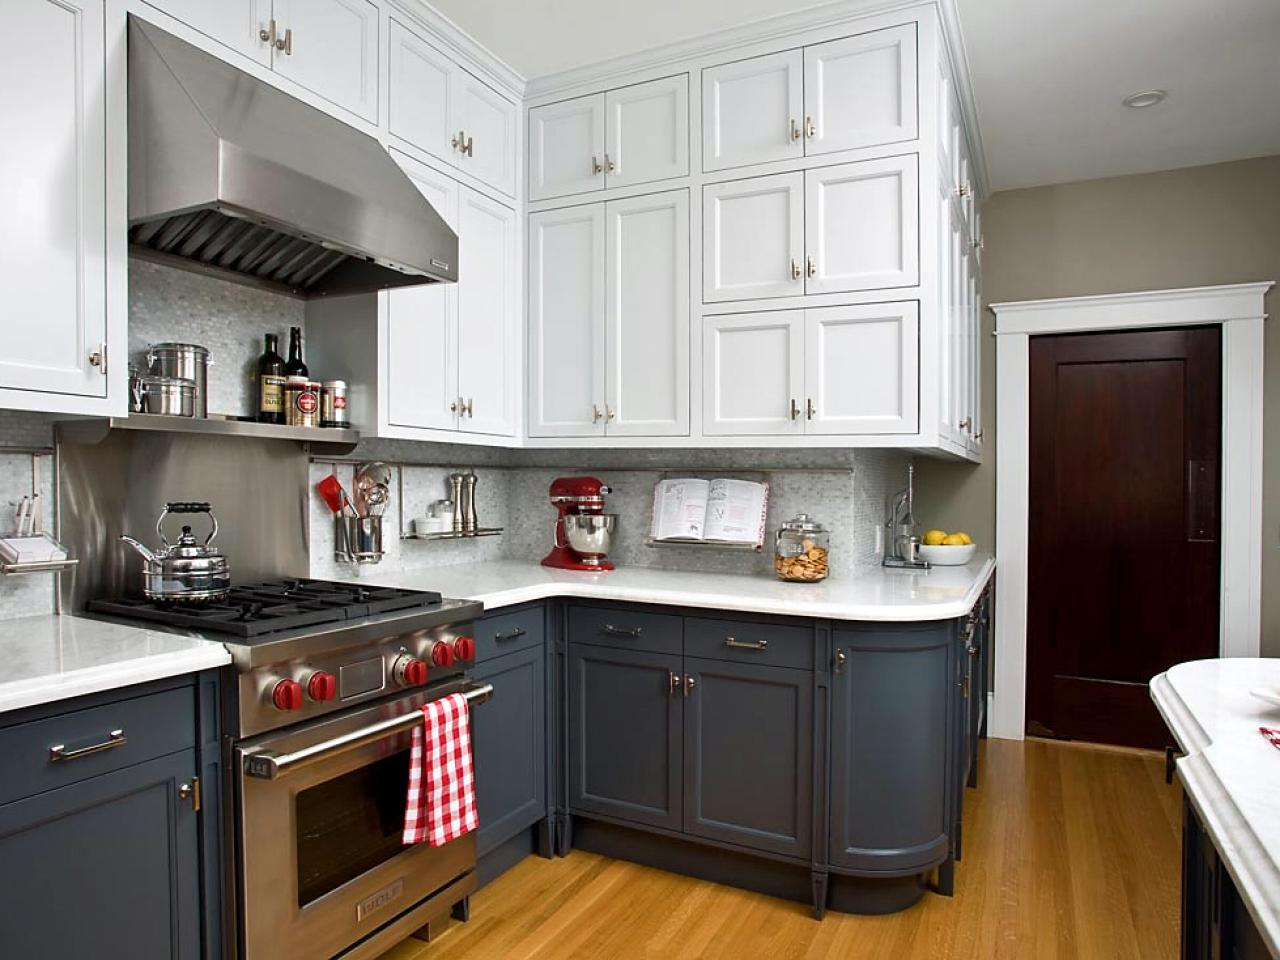 Two Toned Kitchen Cabinets Pictures, Options, Tips & Ideas  Kitchen